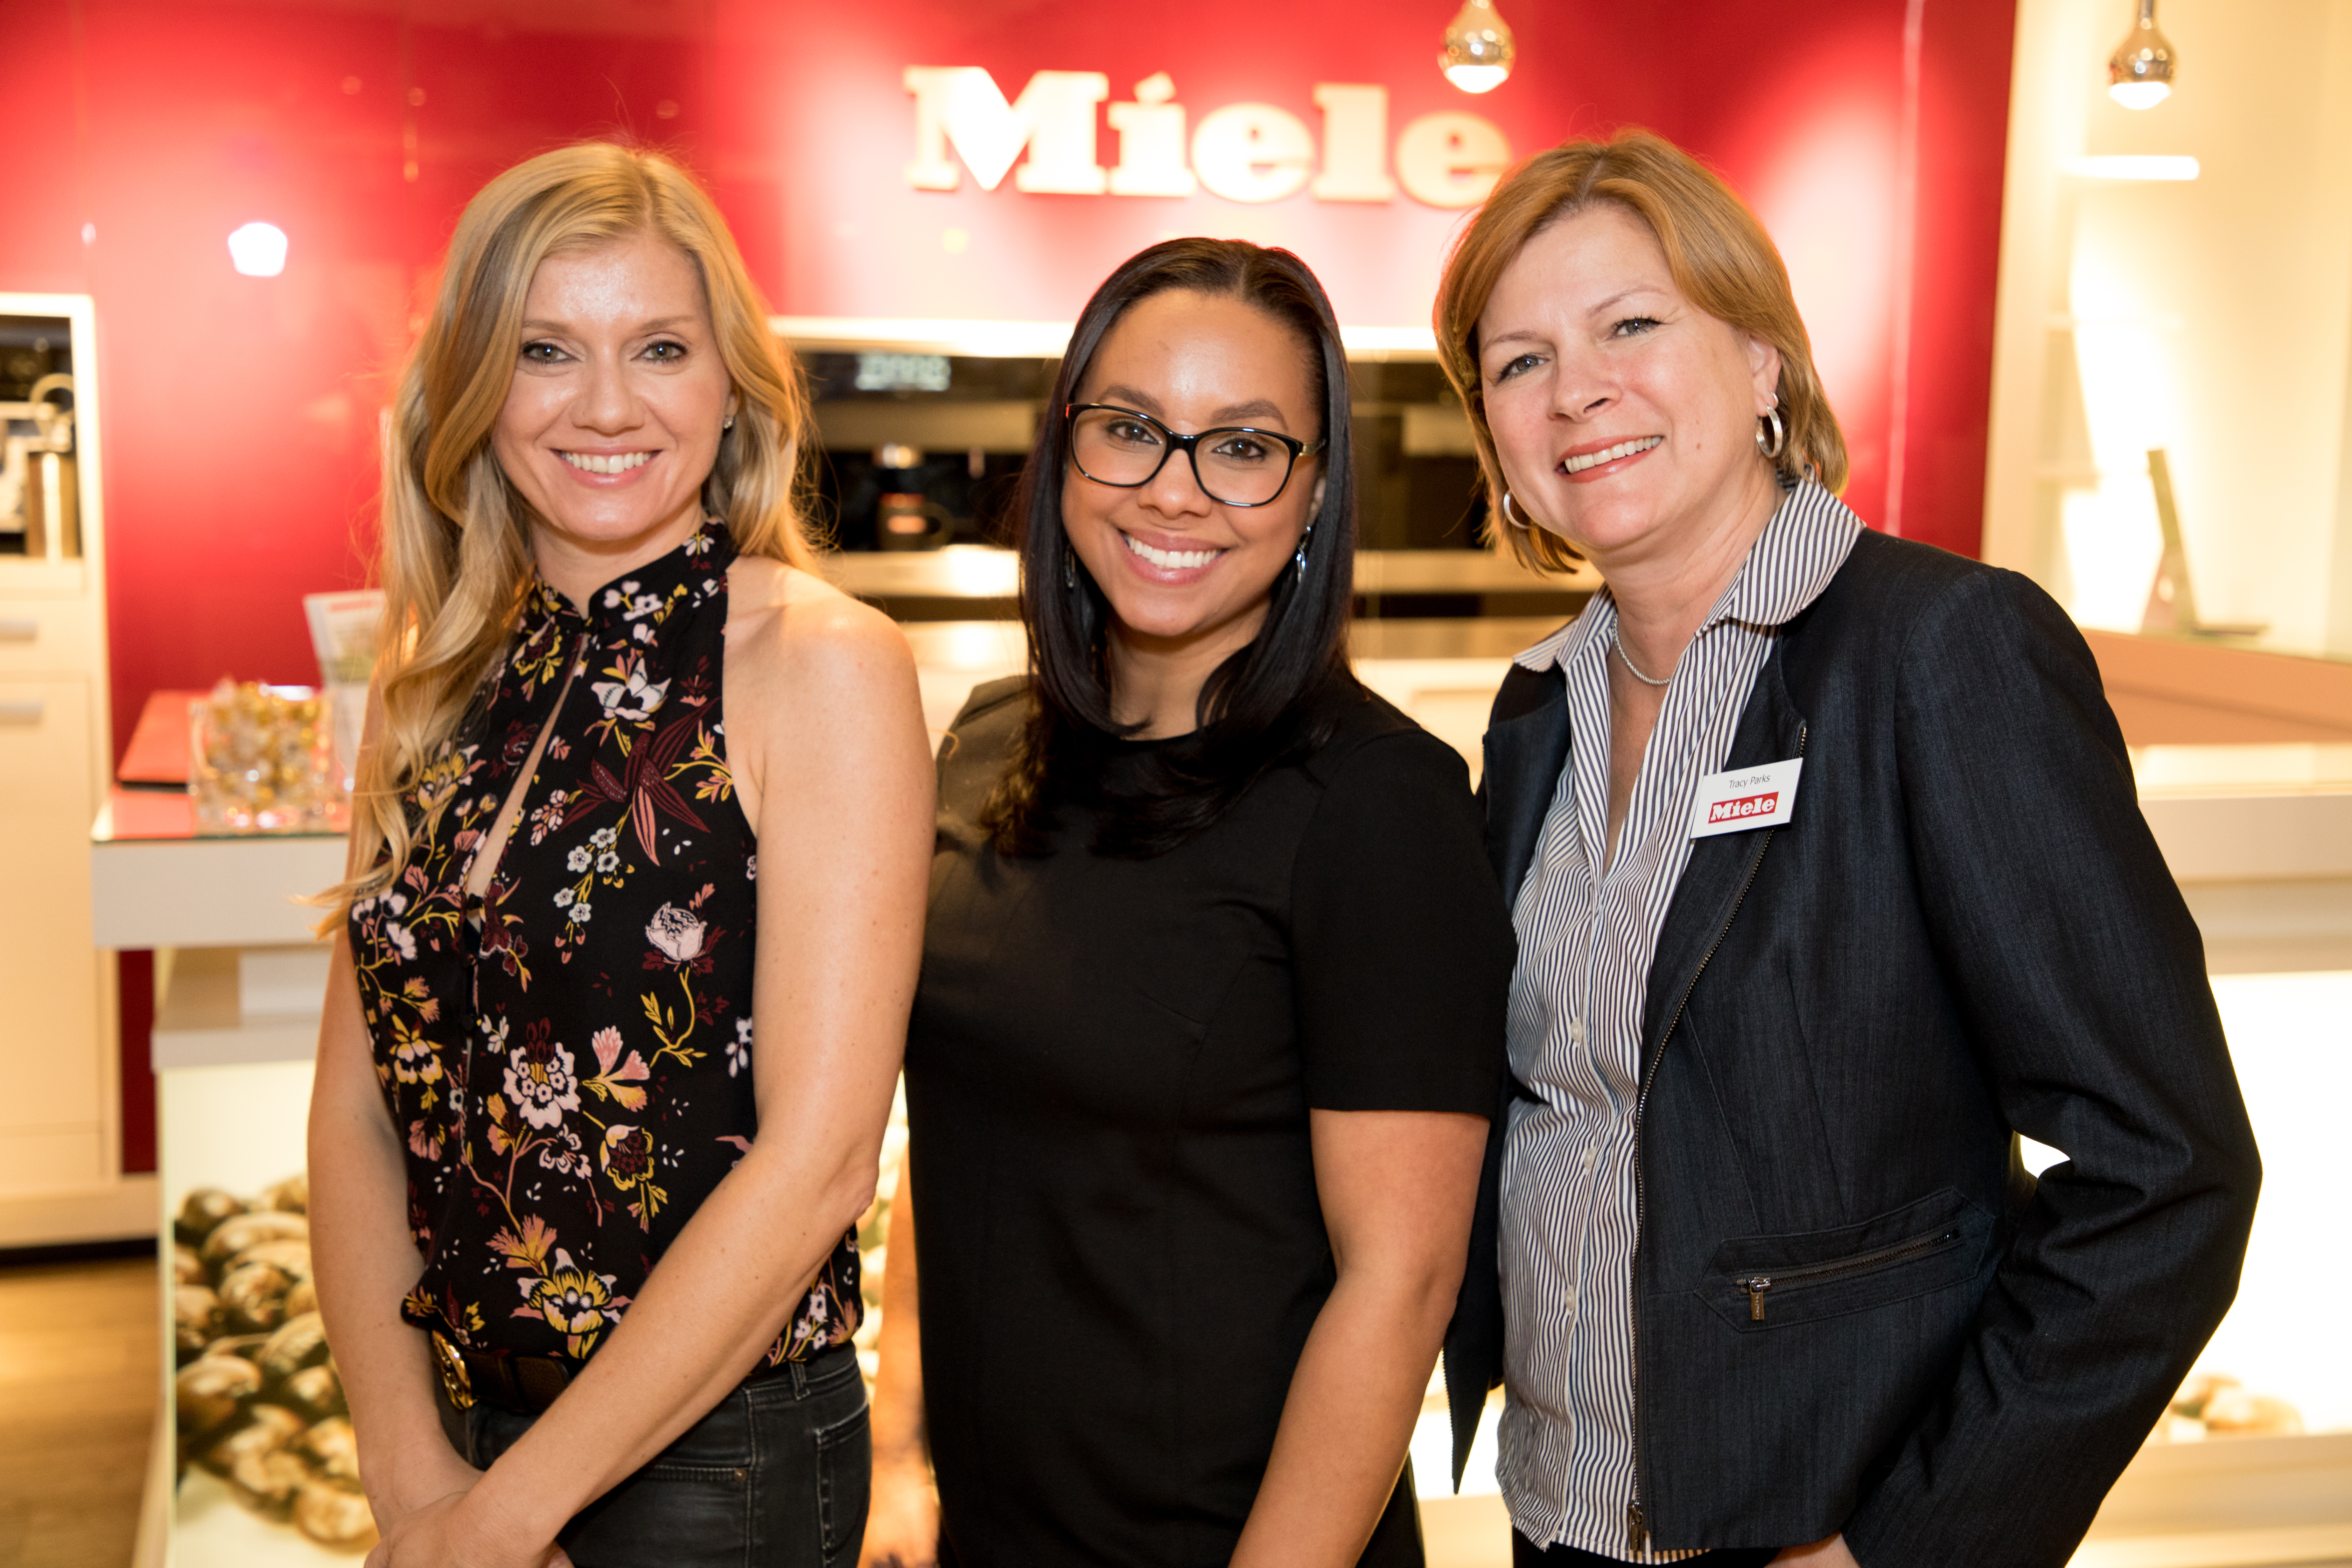 Interior designer Ohara Davies-Gaetano with Miele's Monique Robinson and Tracy Parks